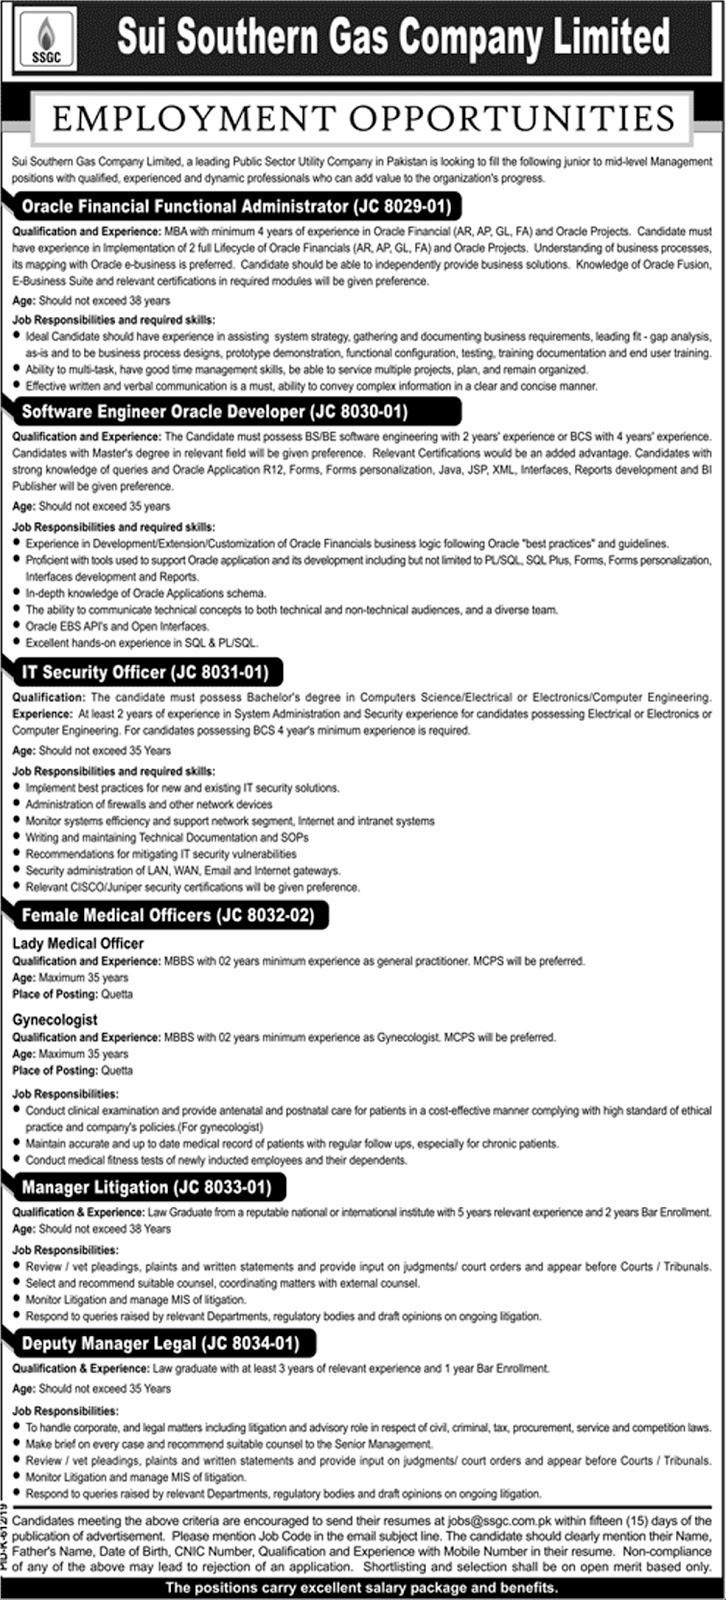 Sui Southern Gas Company Limited Jobs 2019 August